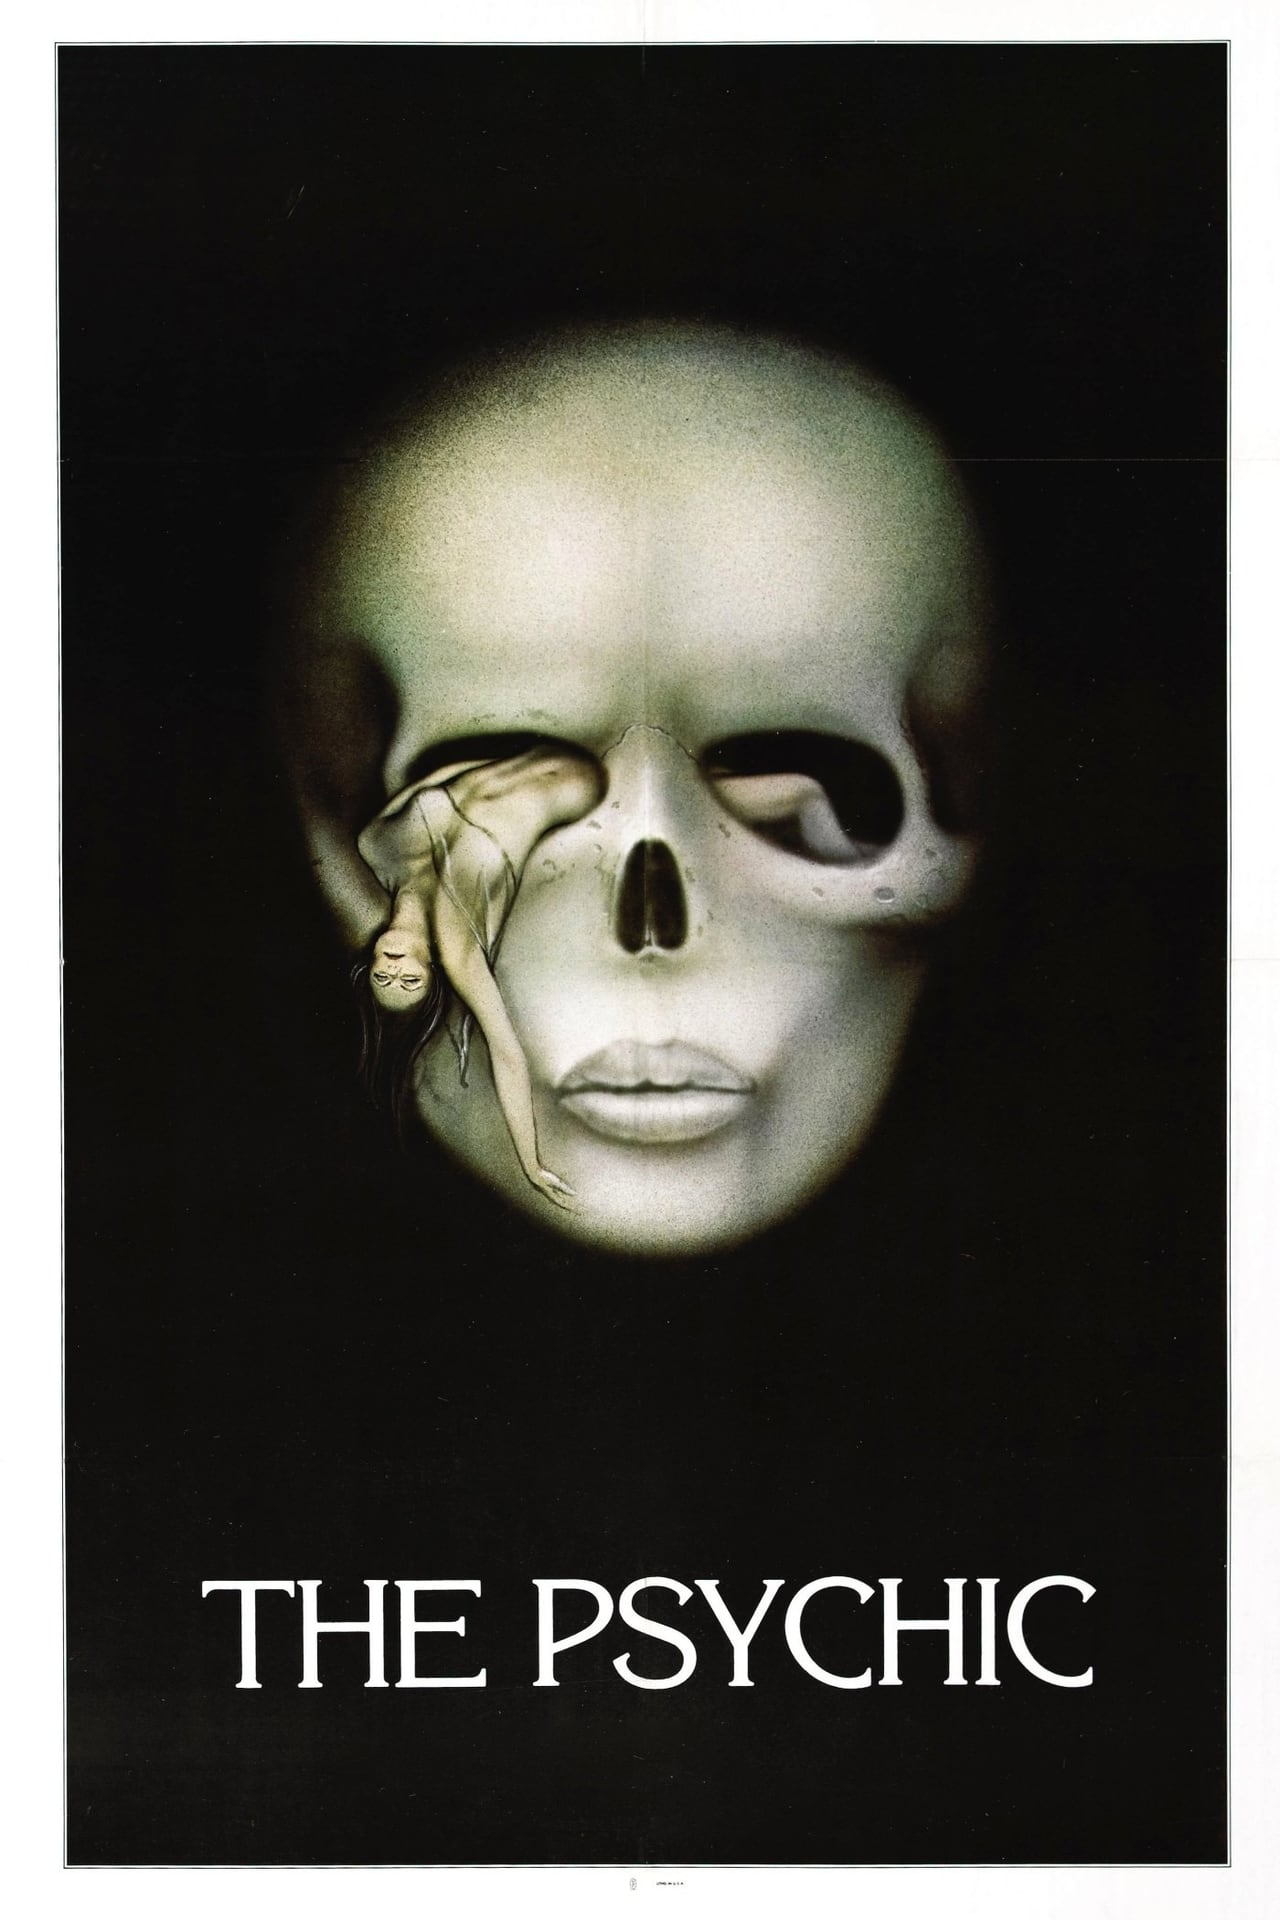 The Psychic (1977)